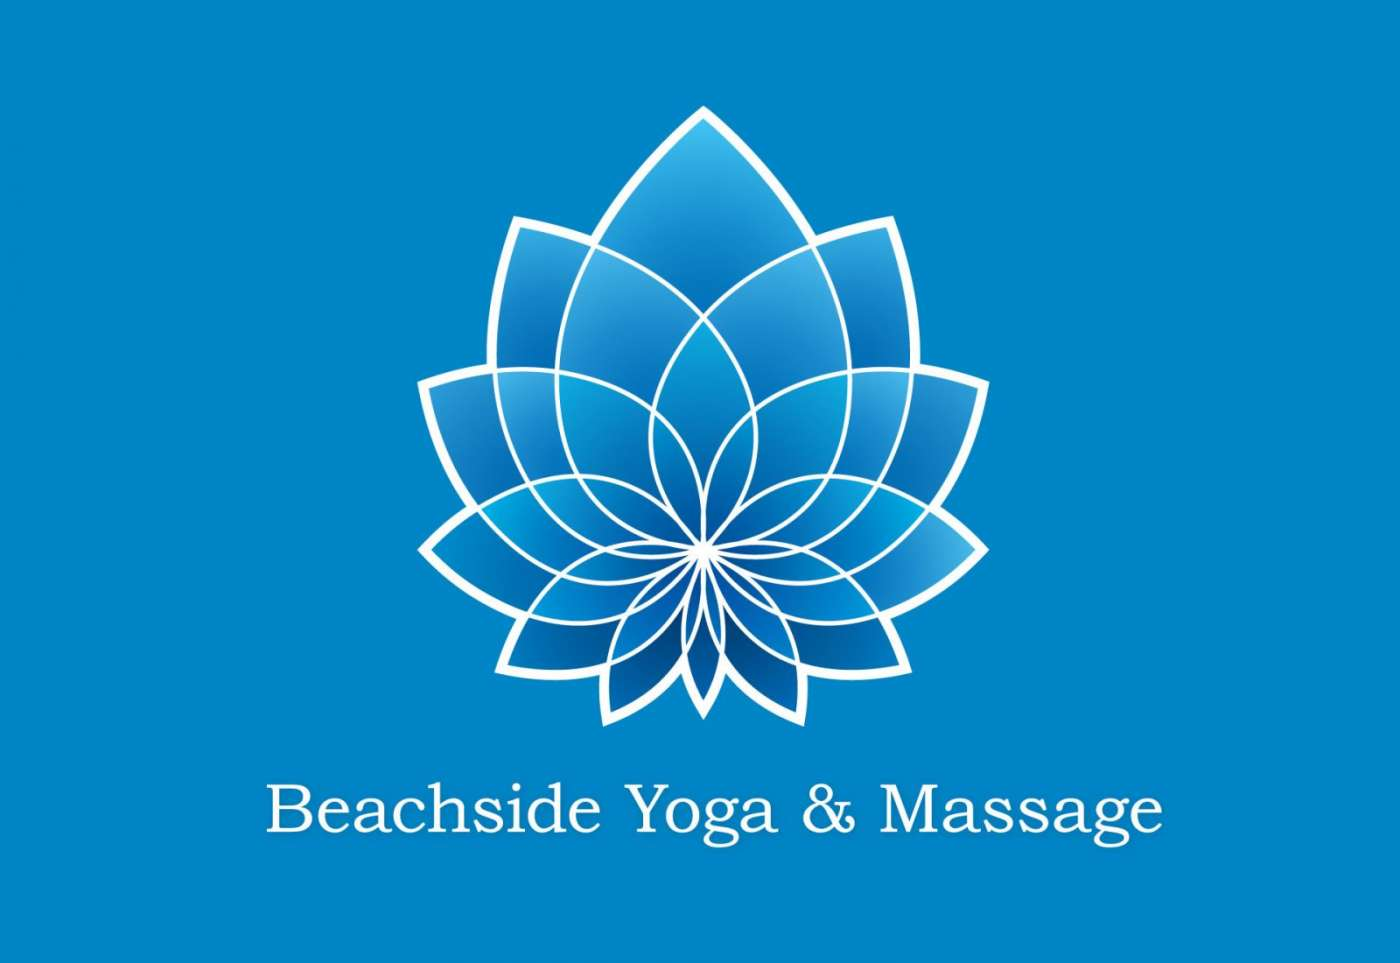 Branding for Beachside Yoga & Massage